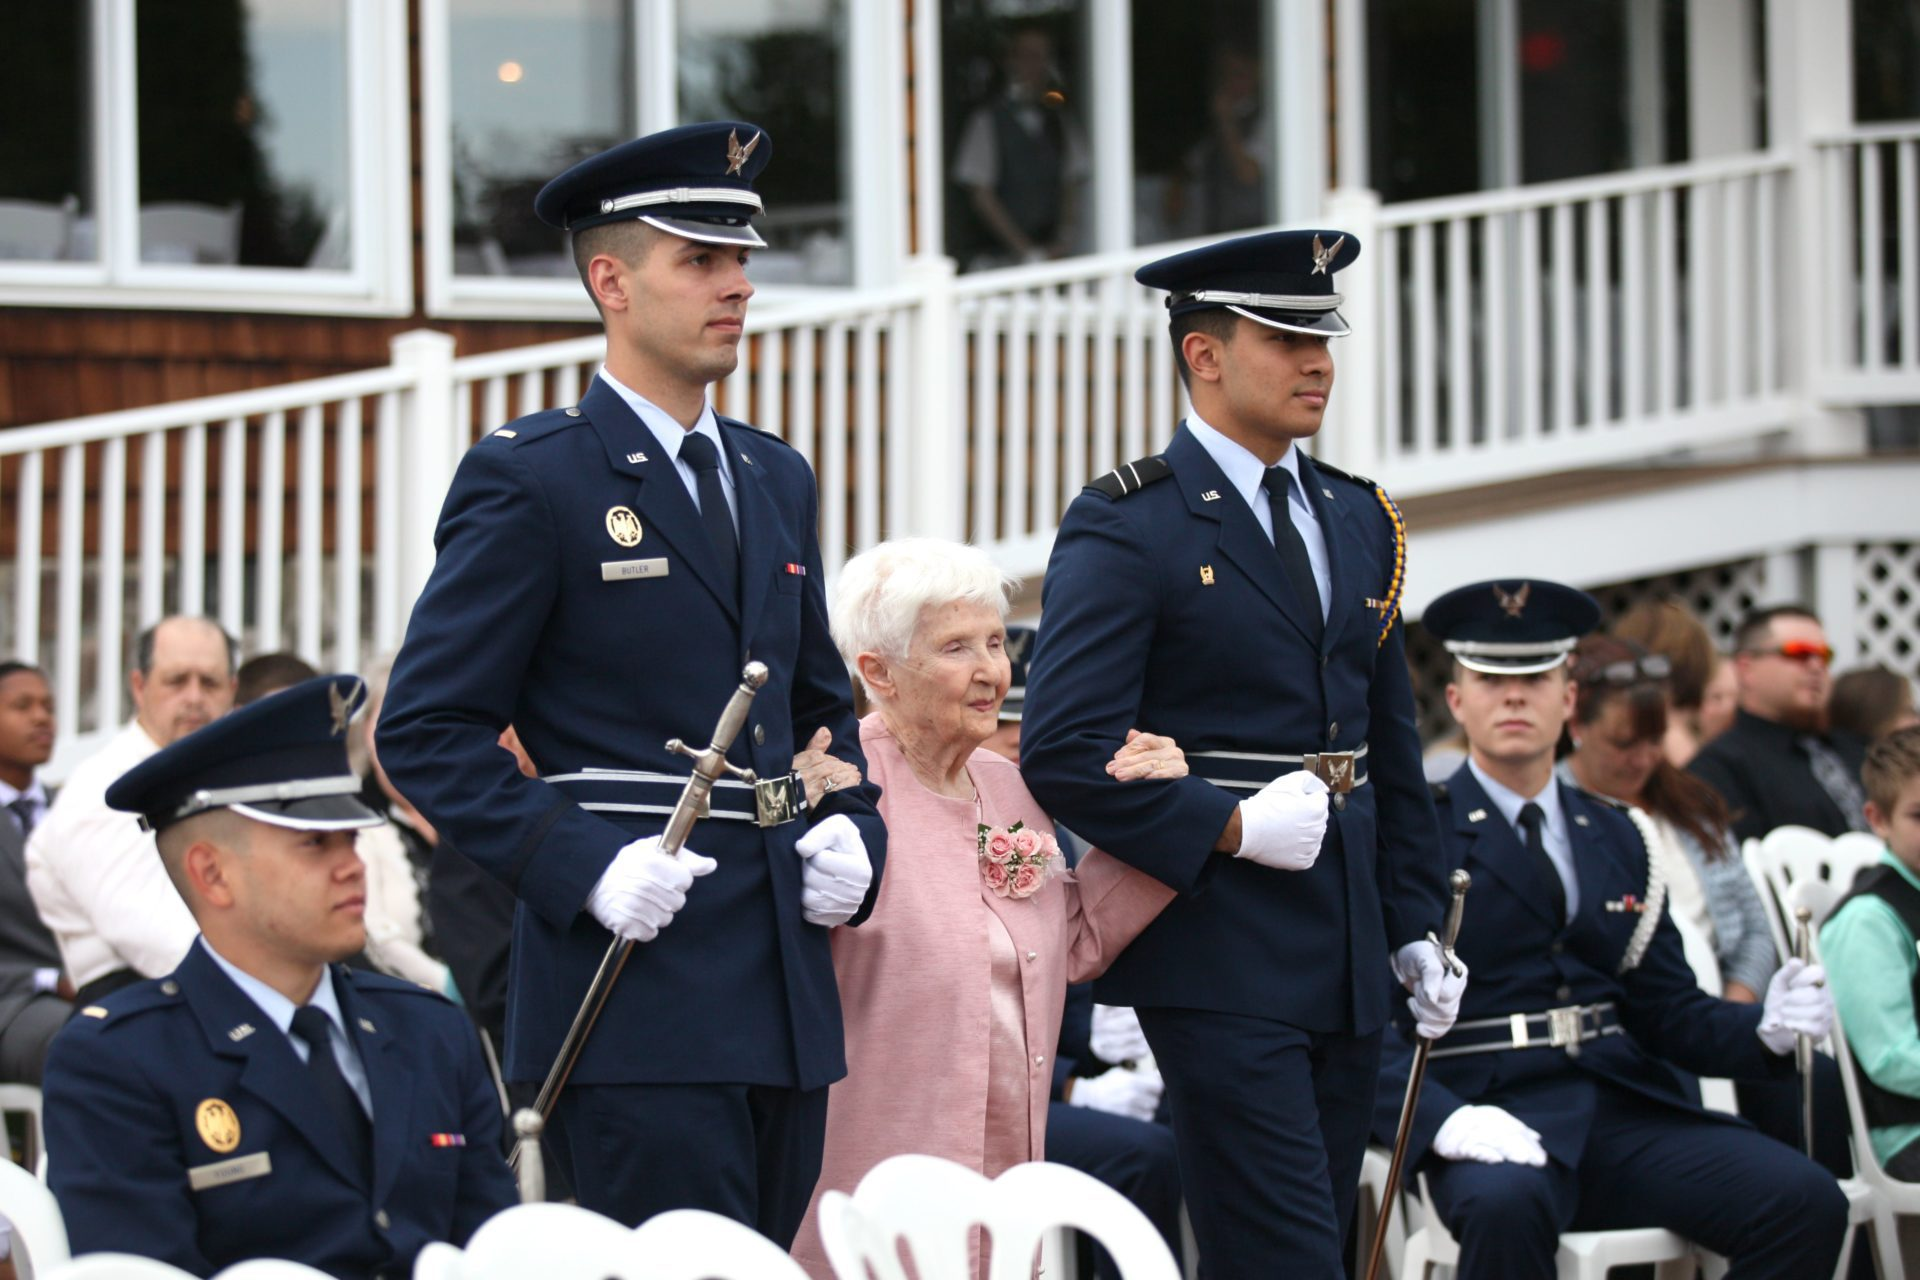 Grandmother escorted by military during tea party theme wedding